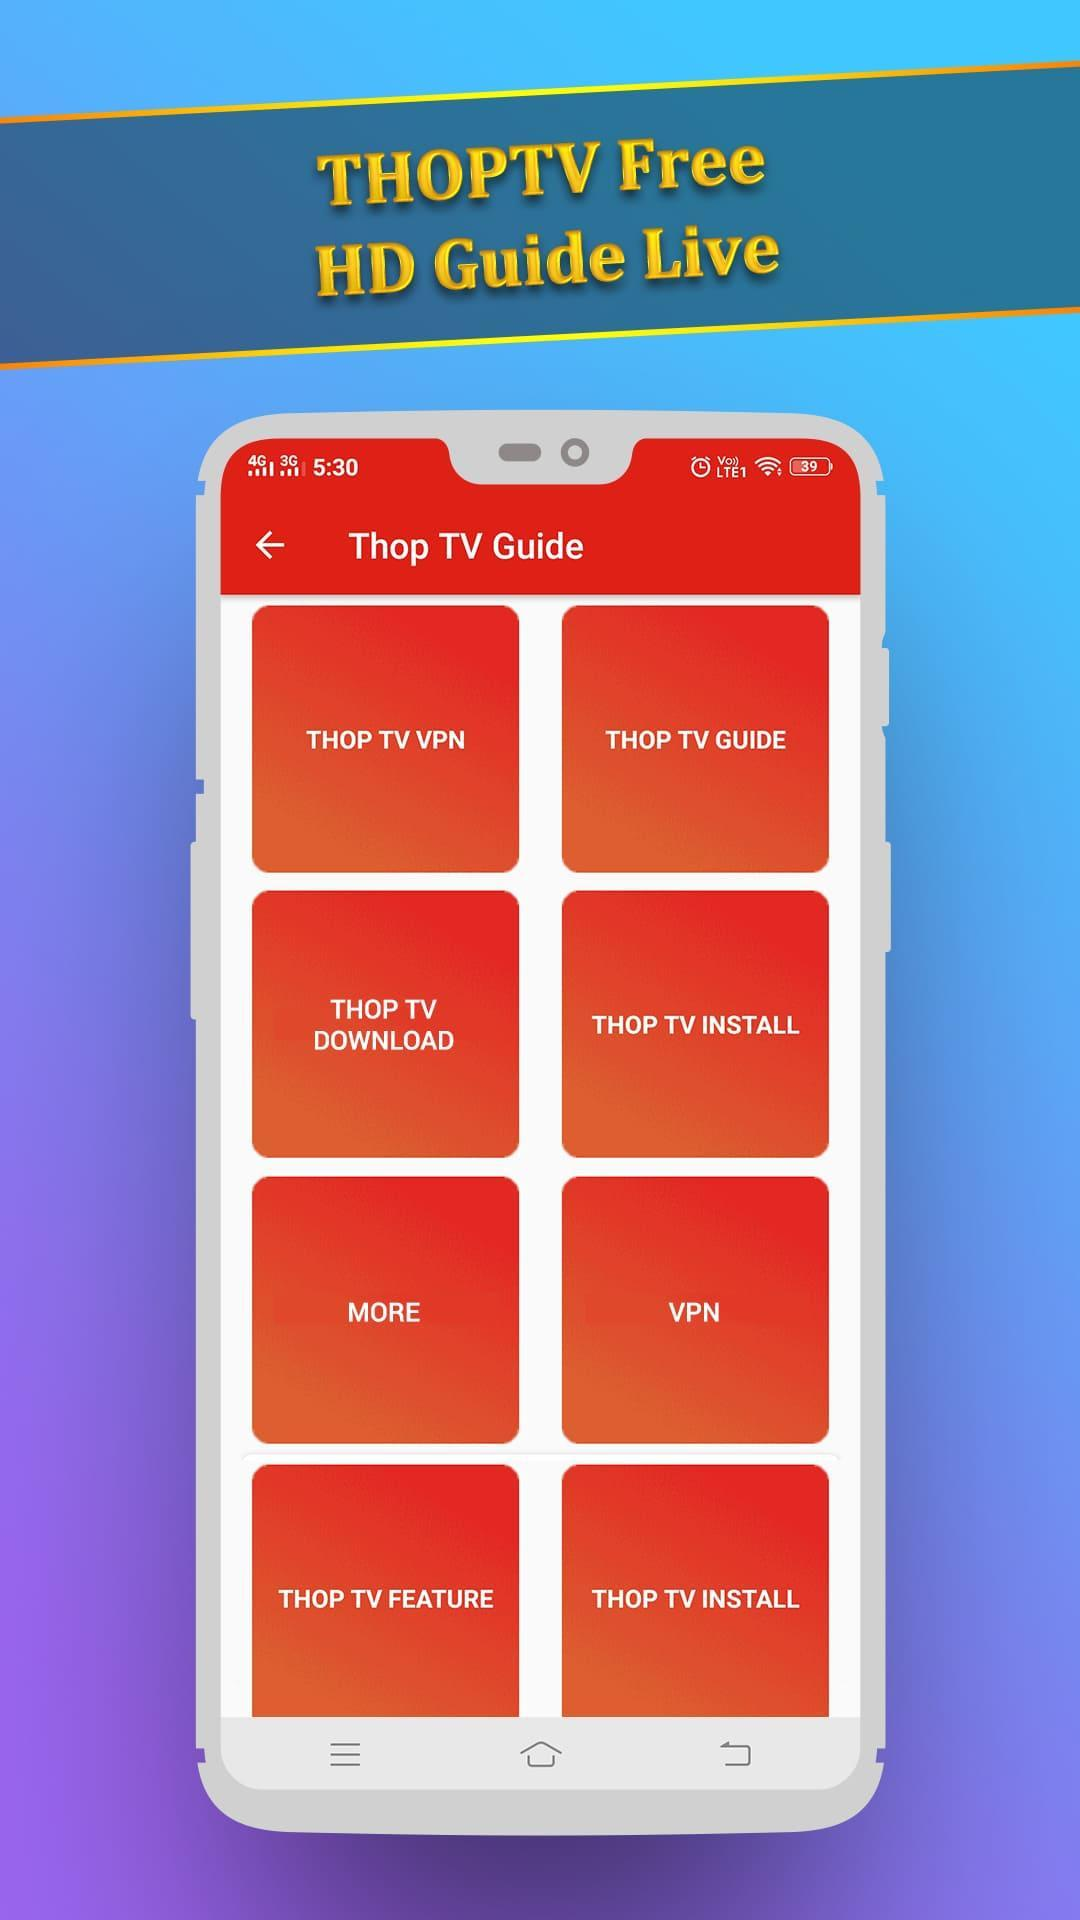 THOPTV Guide - 2019 for Android - APK Download